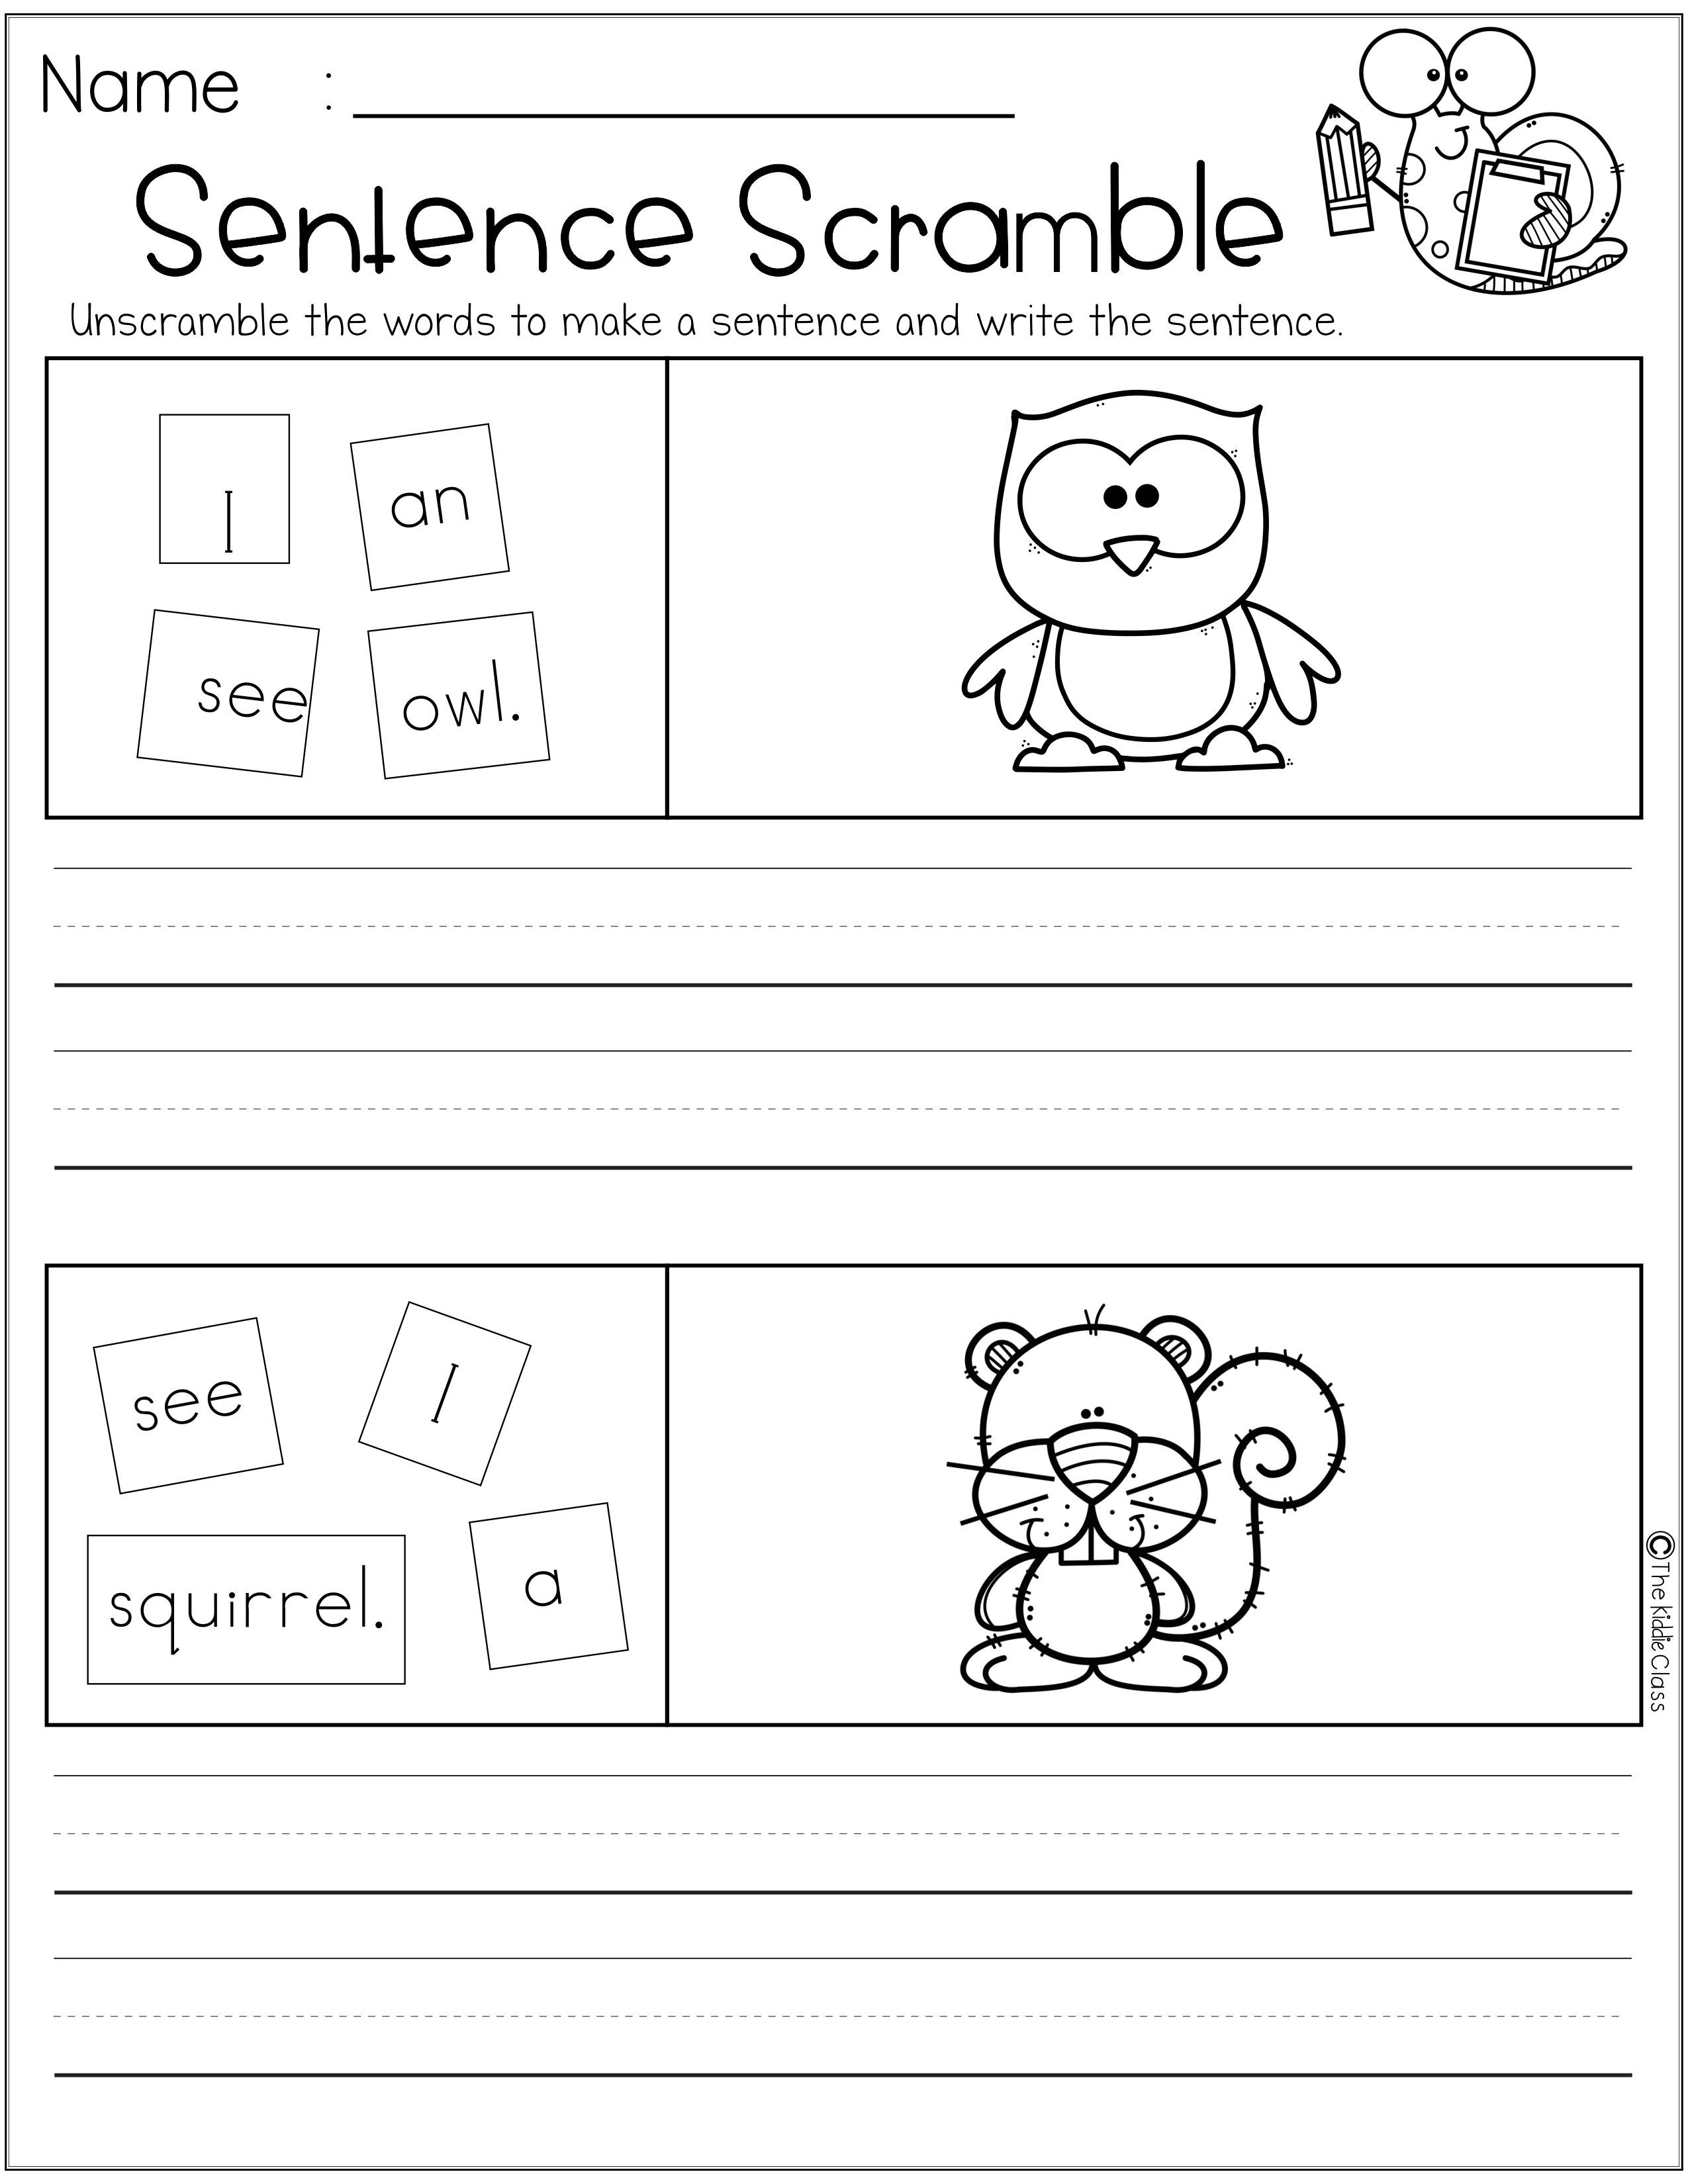 Free Sentence Scramble With Images